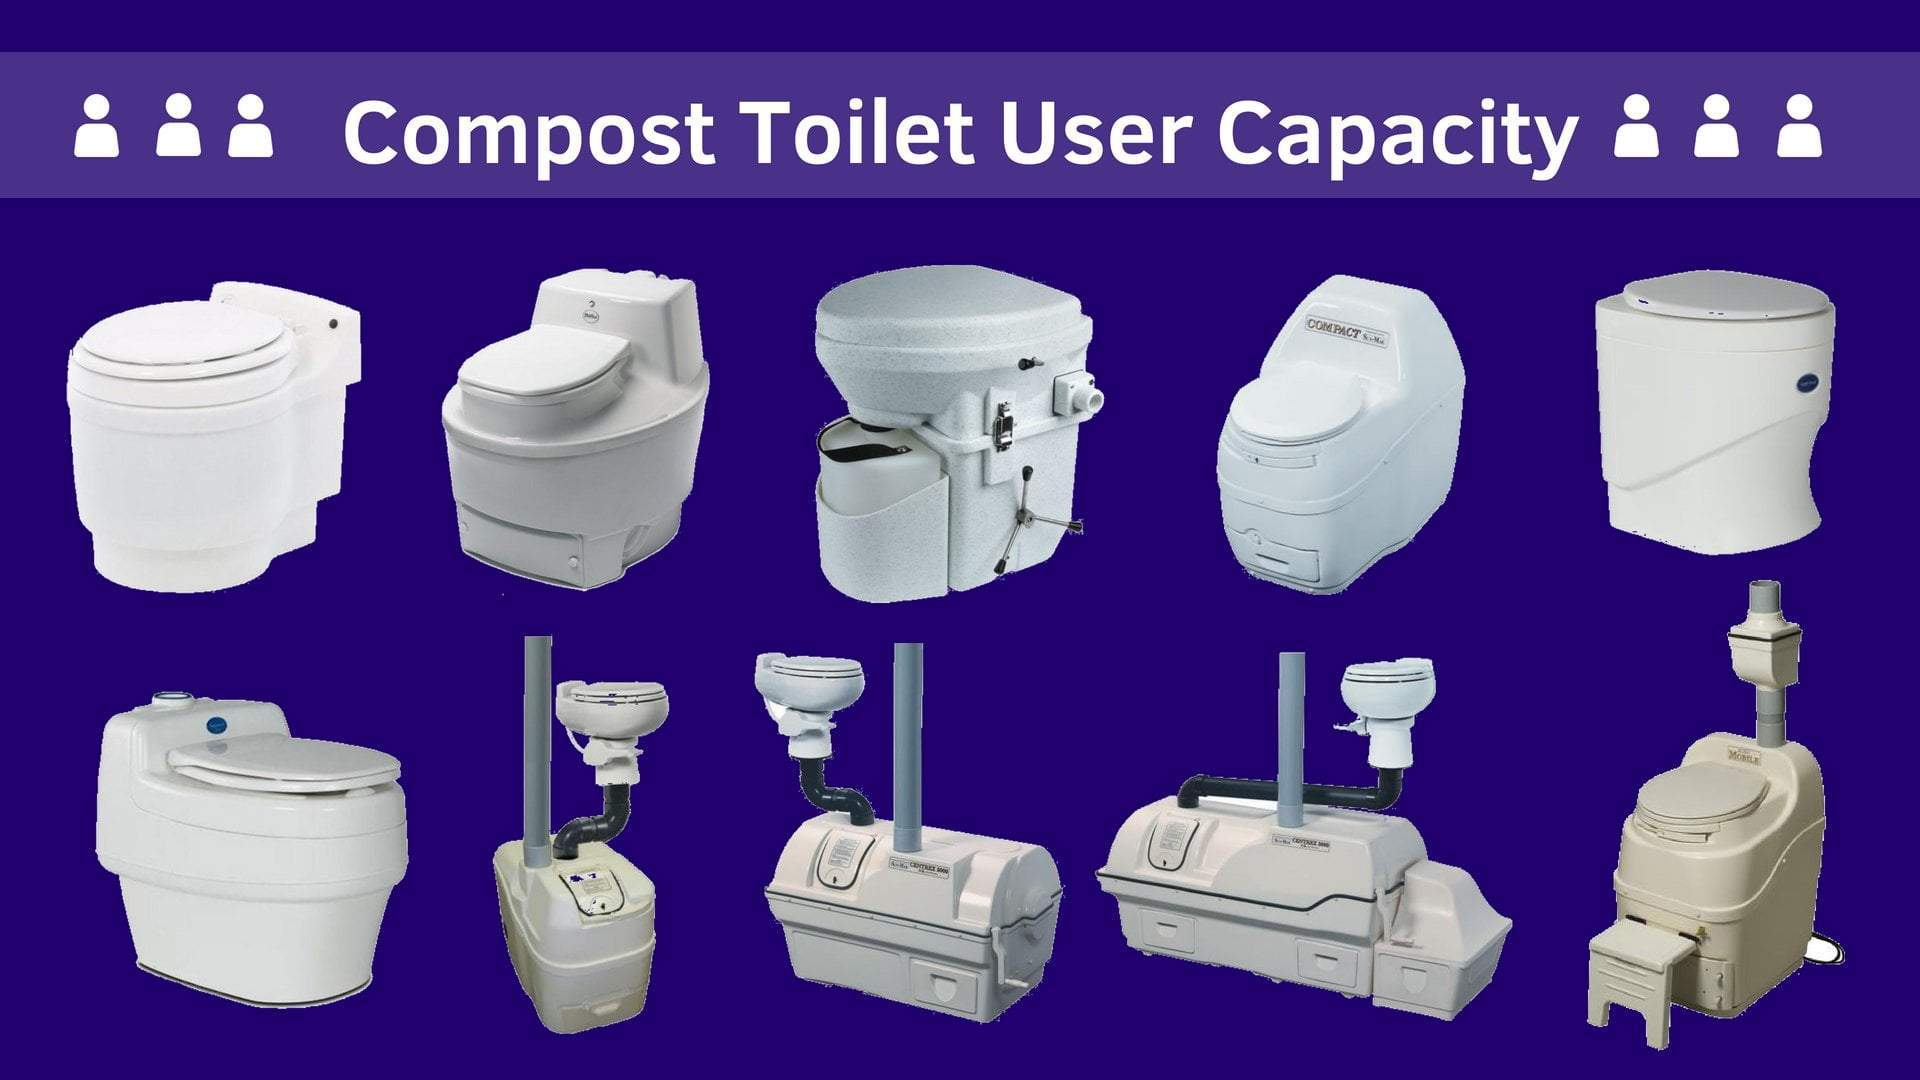 Compost Toilet User Capacity Comparison Chart